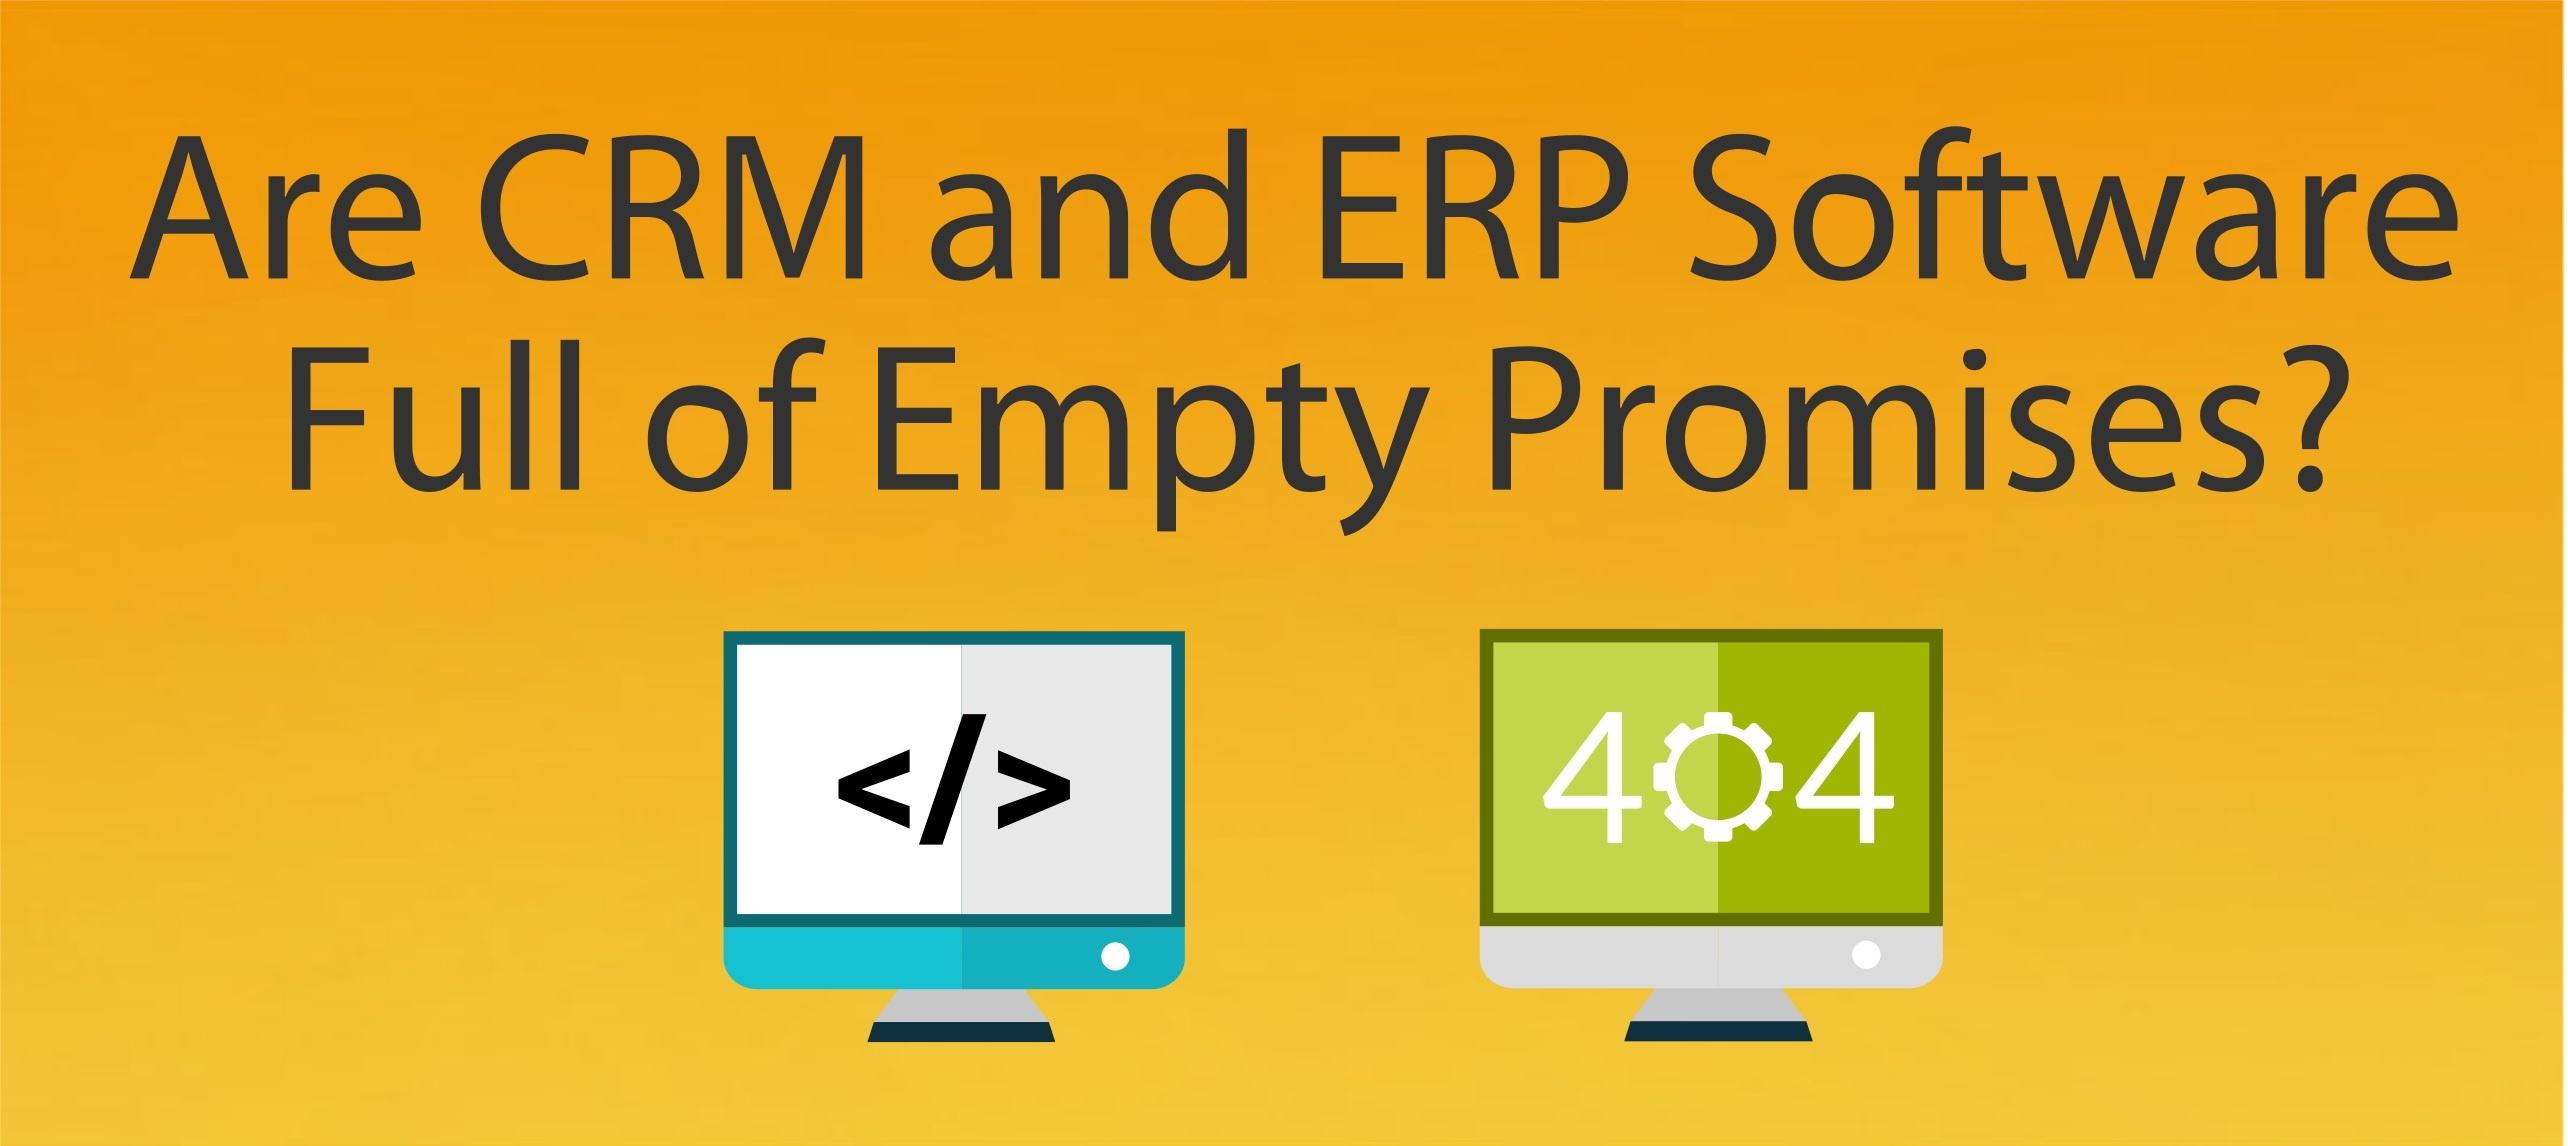 Are CRM and ERP Software Full of Empty Promises?